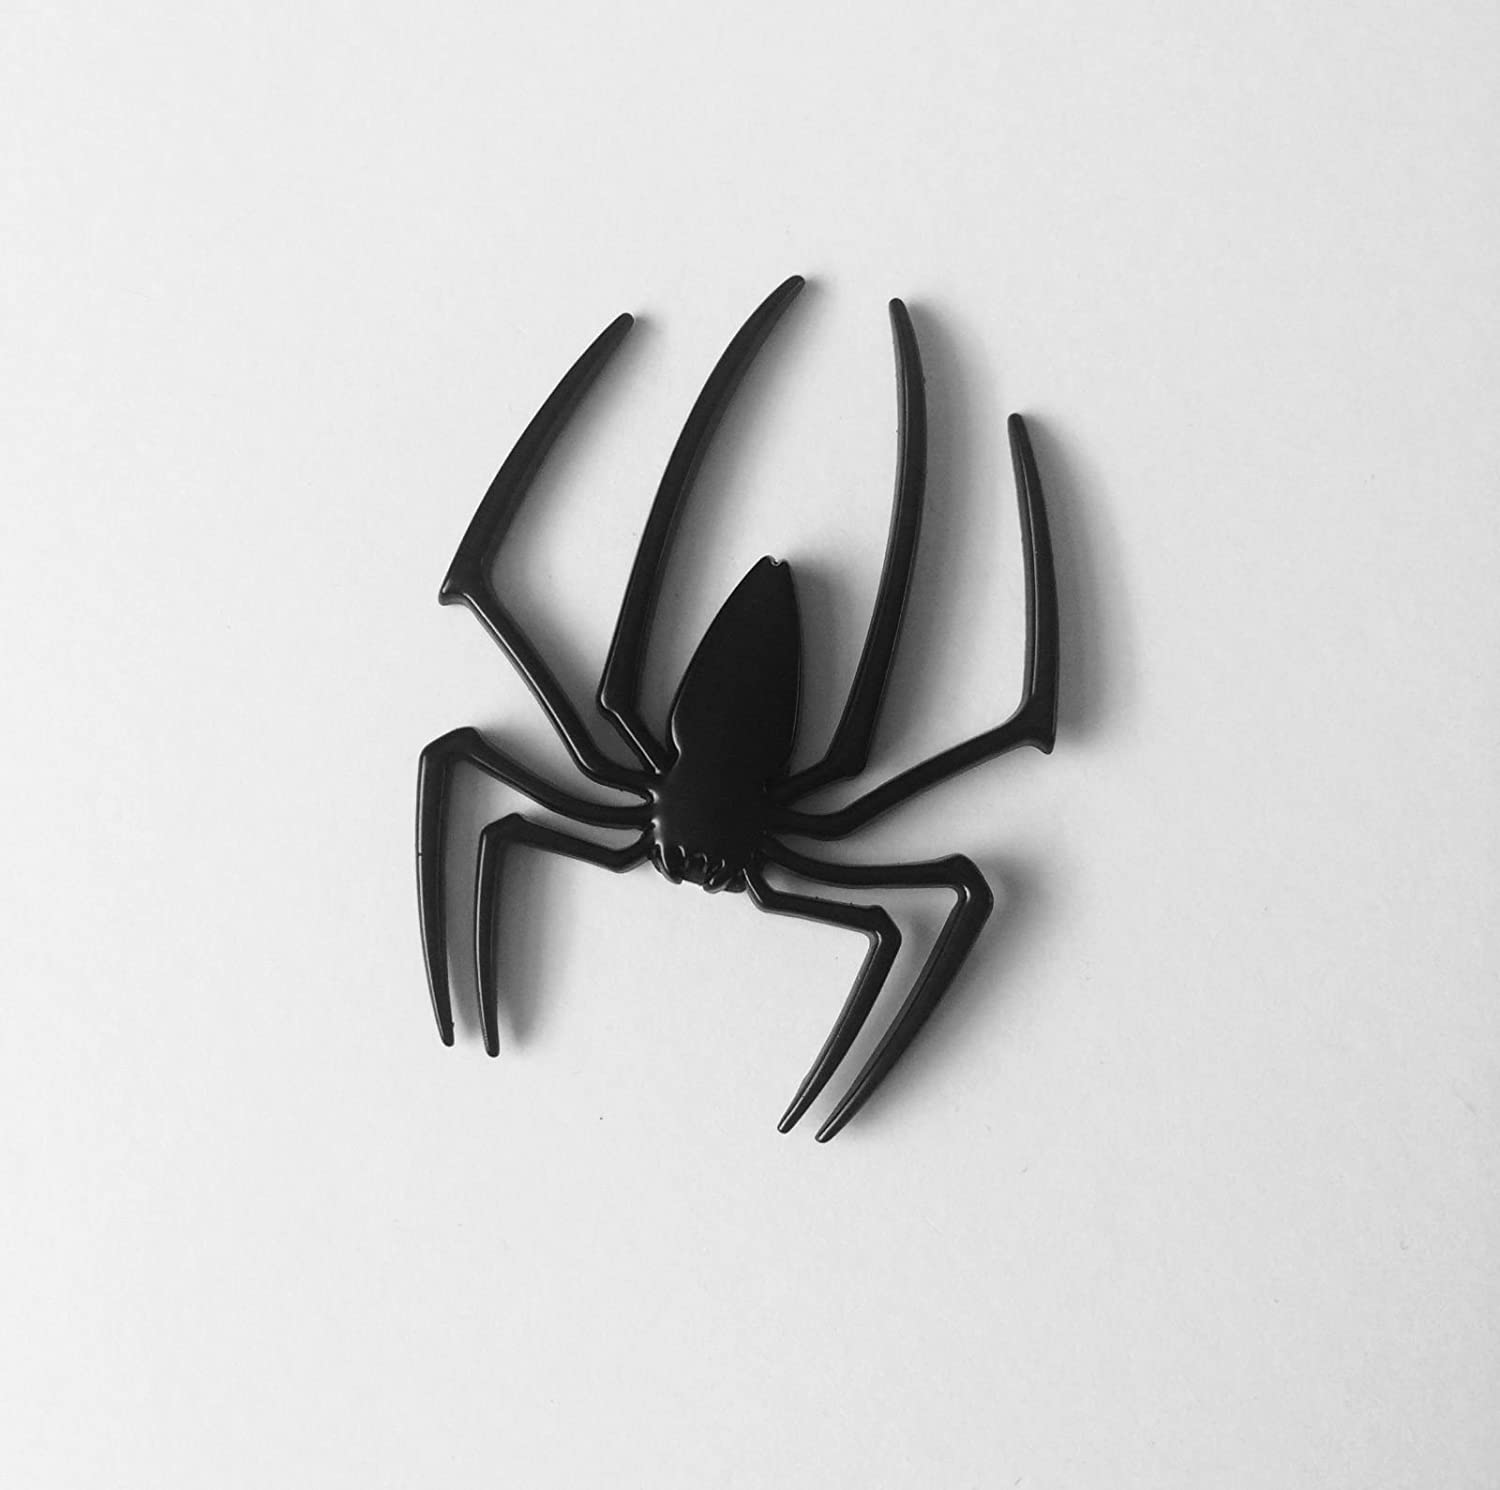 SKS Distribution/® 3D Spider Matte Black Car Decal Sticker Truck Motor Metal New Cute Shape Emblem Stainless Car Styling Accessories